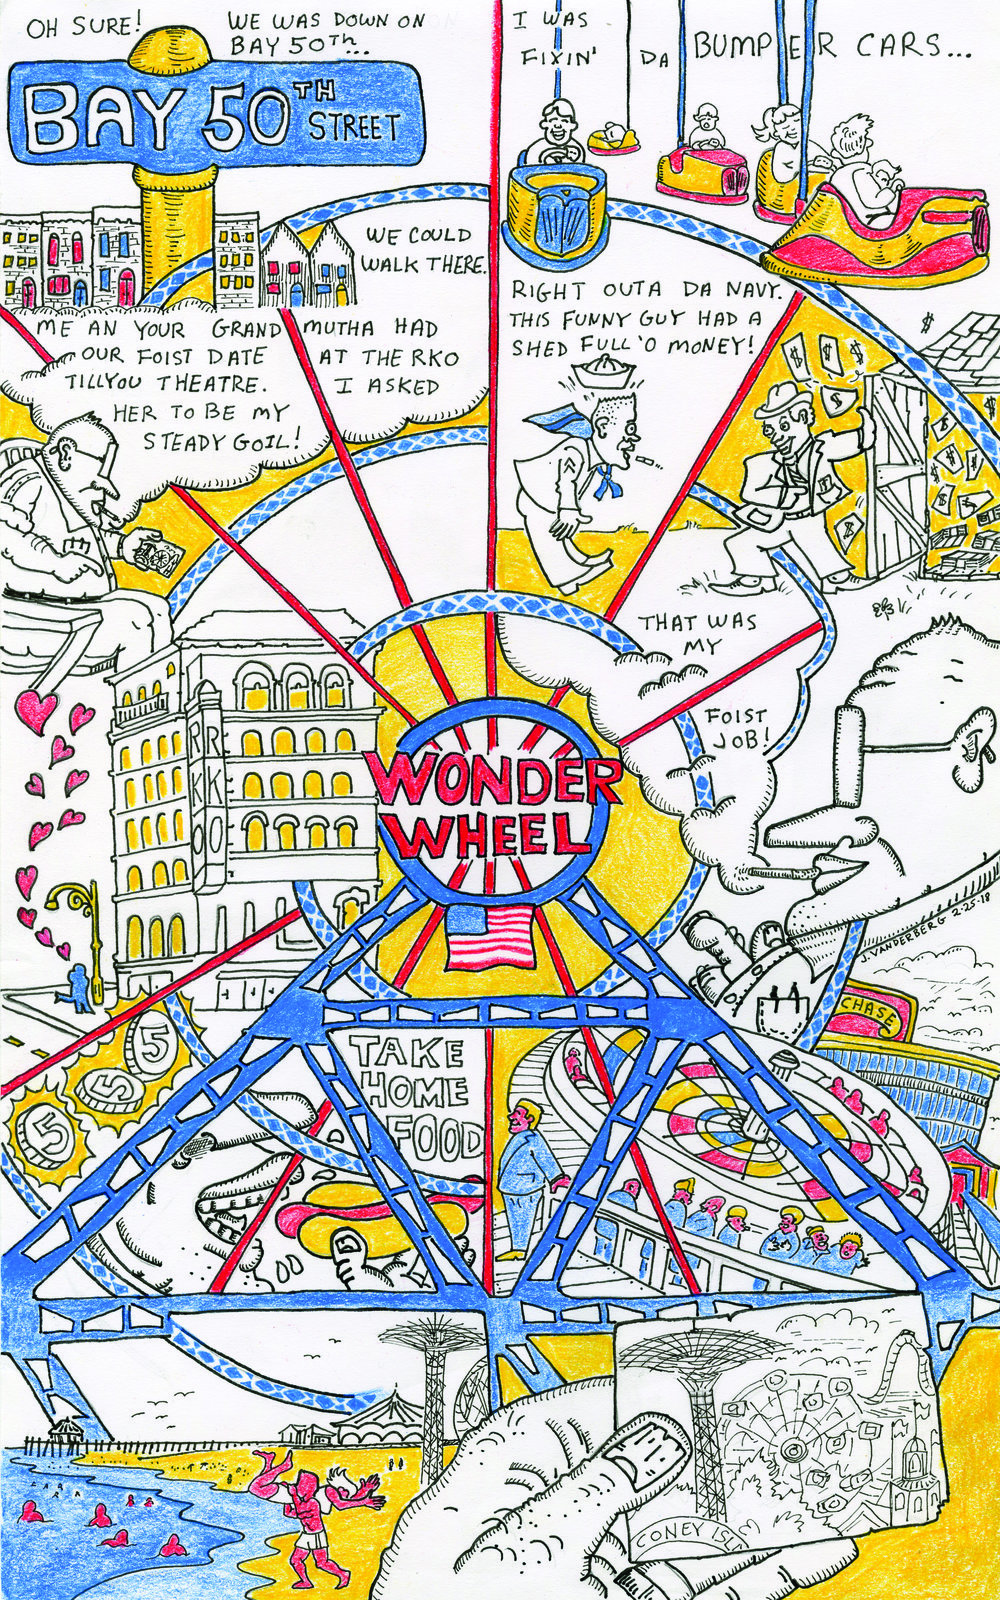 John, Carmela and The Wonder Wheel - A broadside for Smoke Signal's all Coney Island Issue.